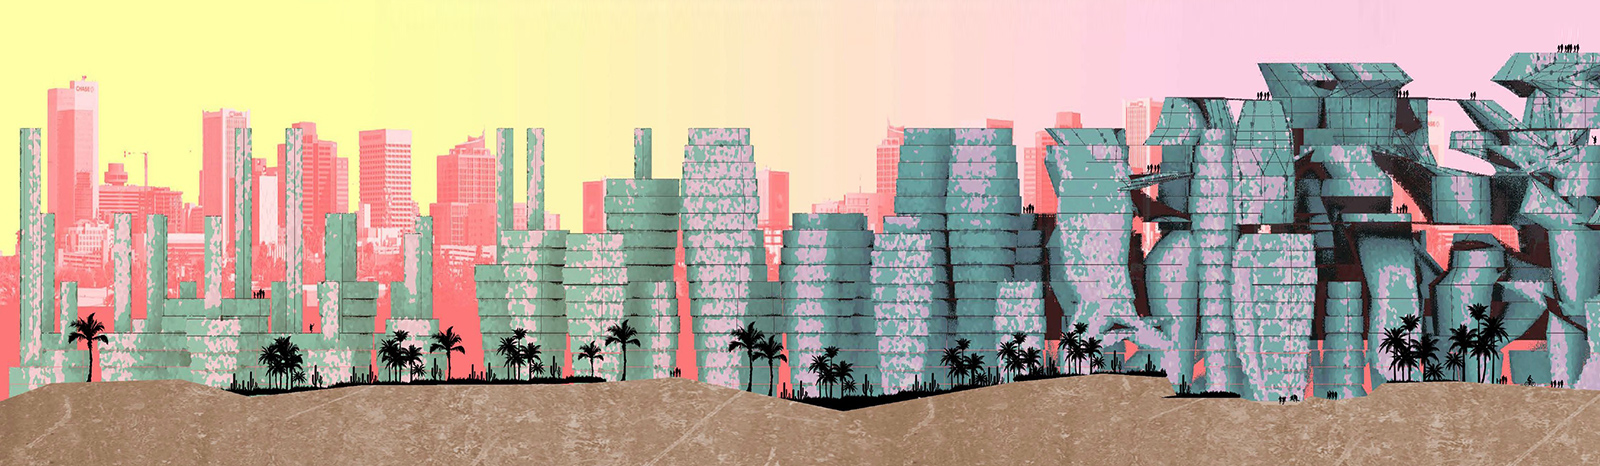 Temporal development of an organic infill city proposed by student Brayan Munoz illustrated through shifting elevations